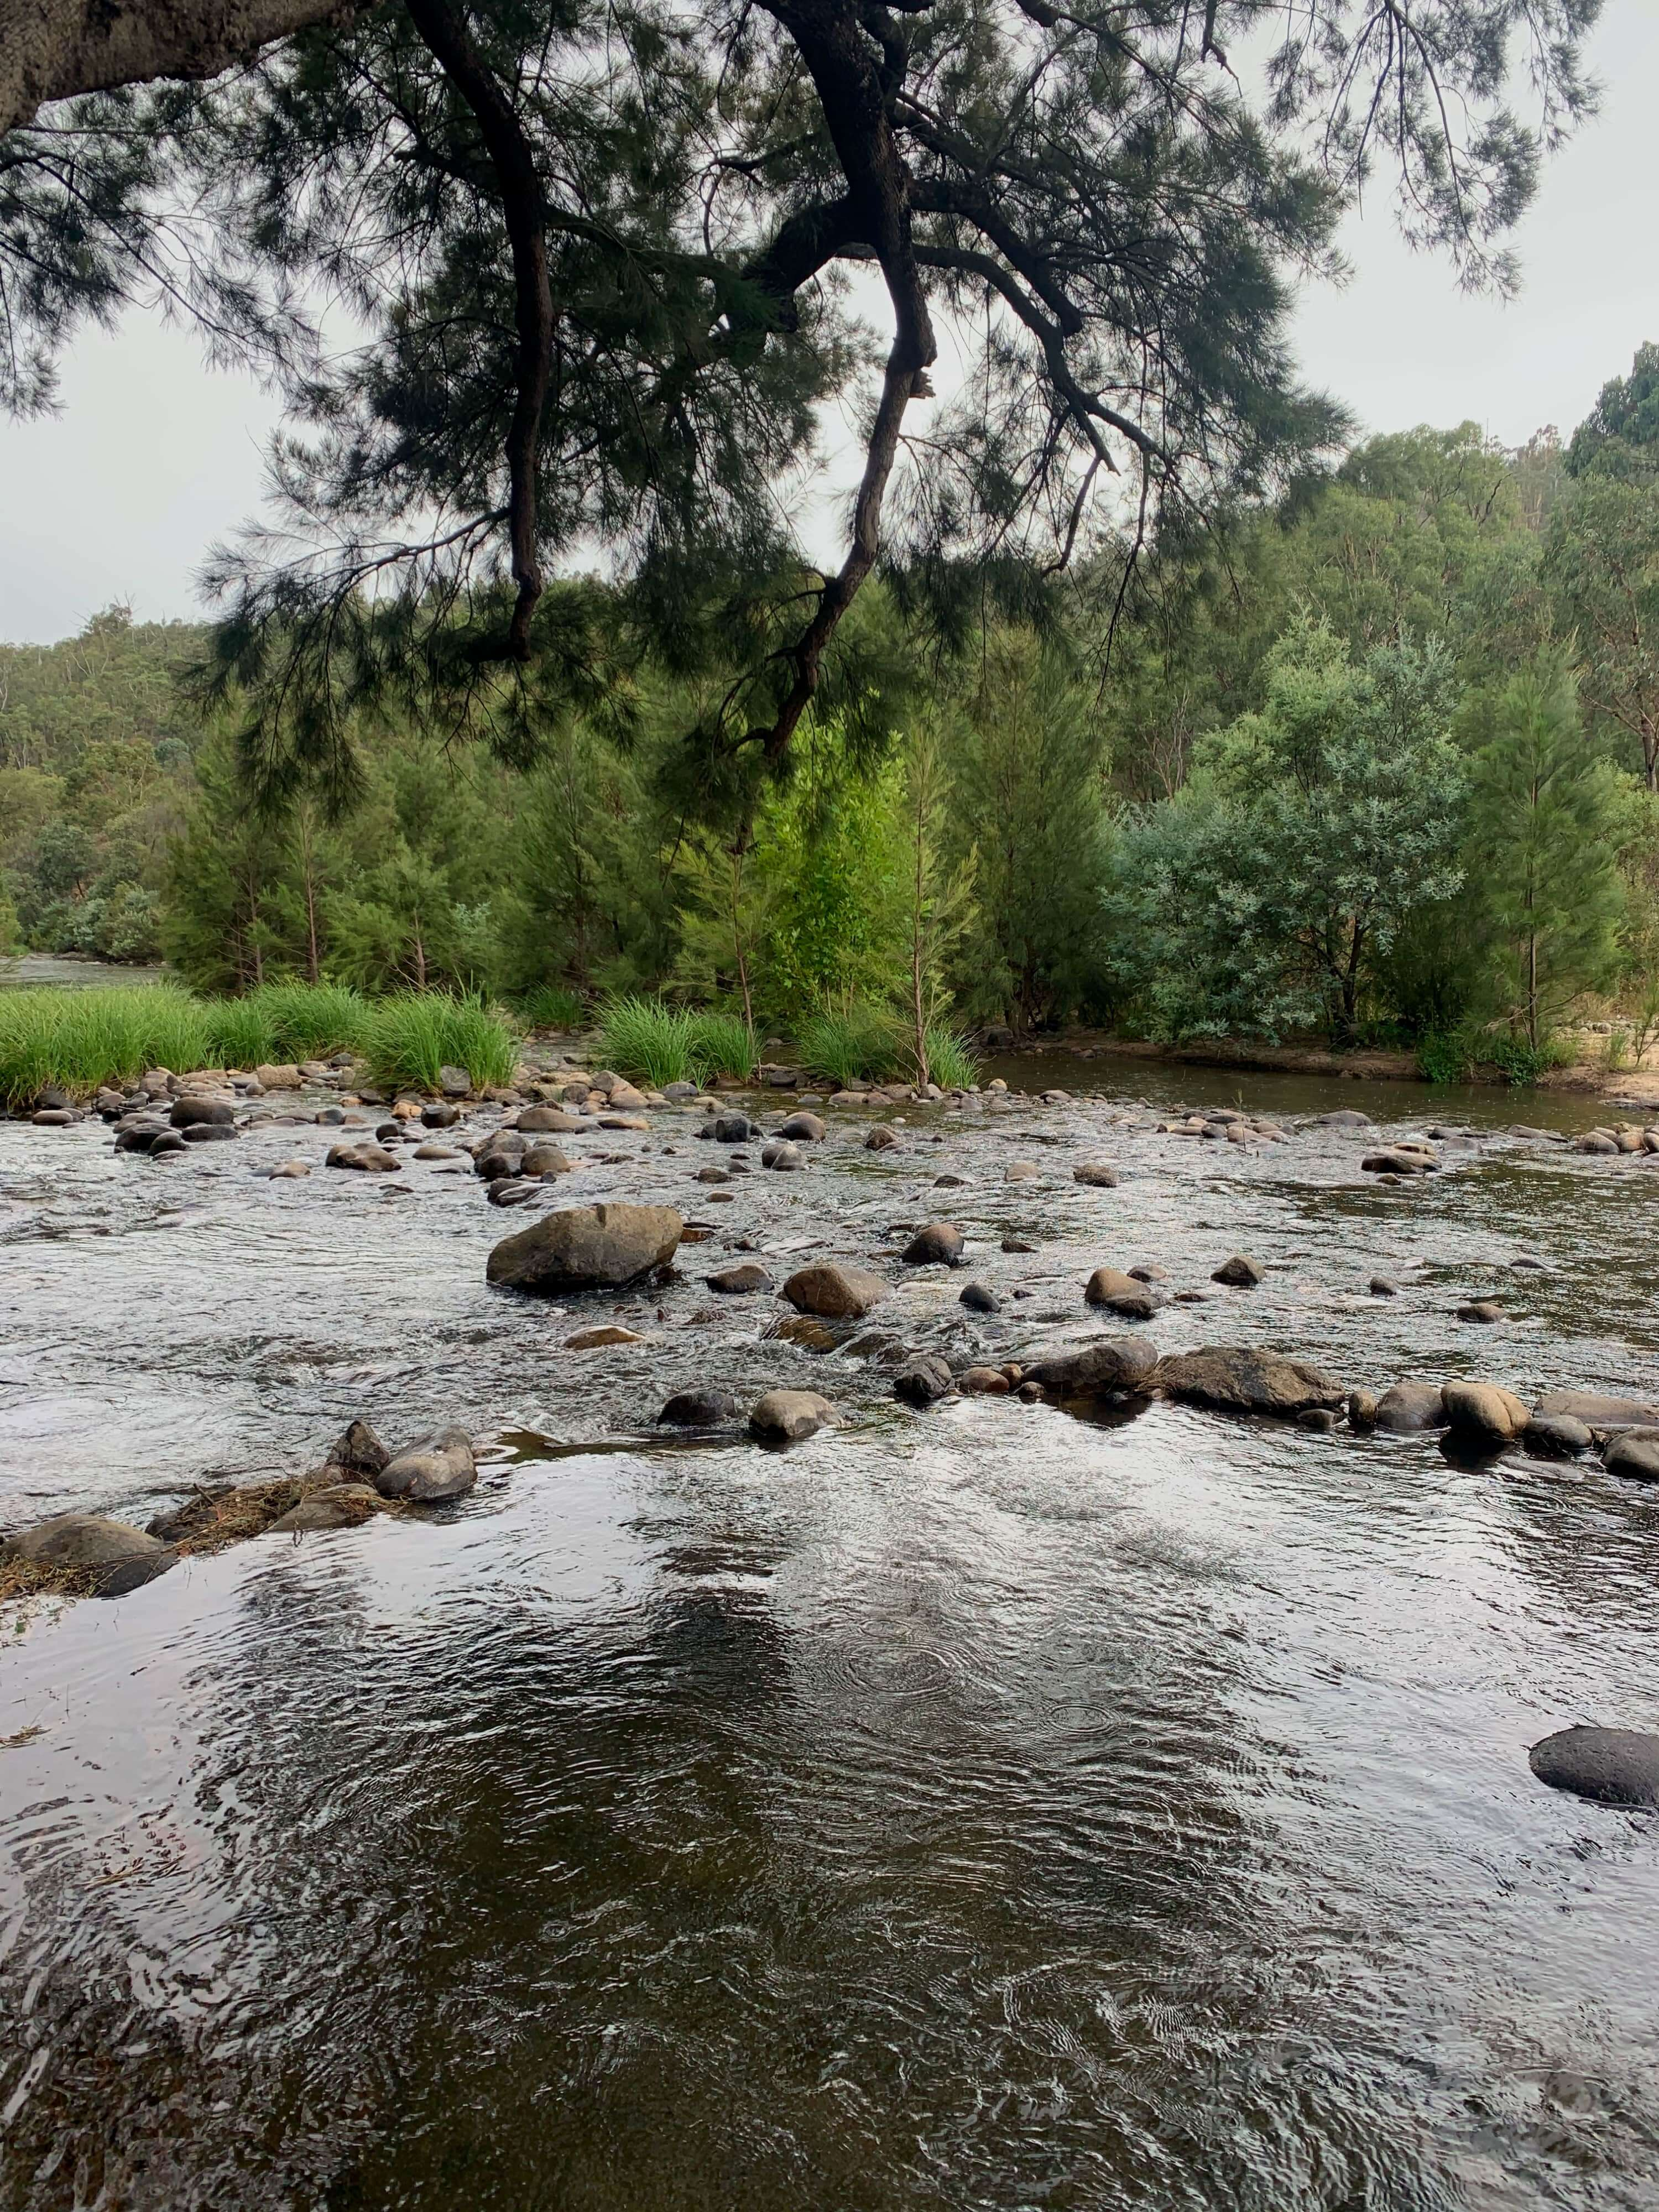 Cotter river, outskirts of Canberra